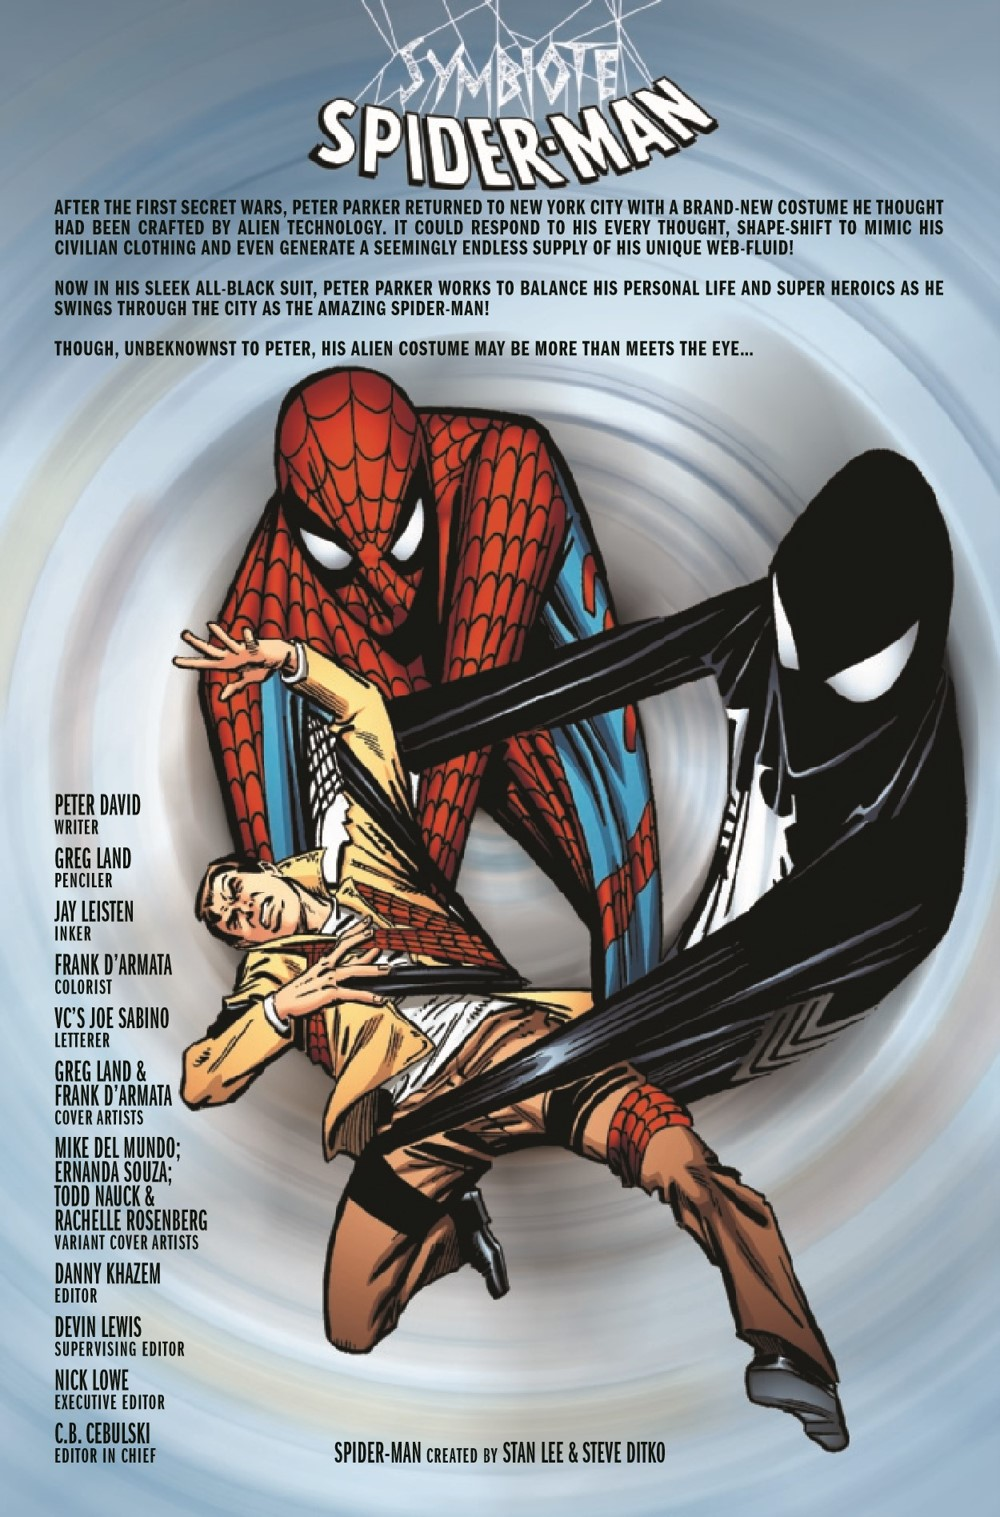 SYMBIOTESMCR2021001_Preview-2 ComicList Previews: SYMBIOTE SPIDER-MAN CROSSROADS #1 (OF 5)